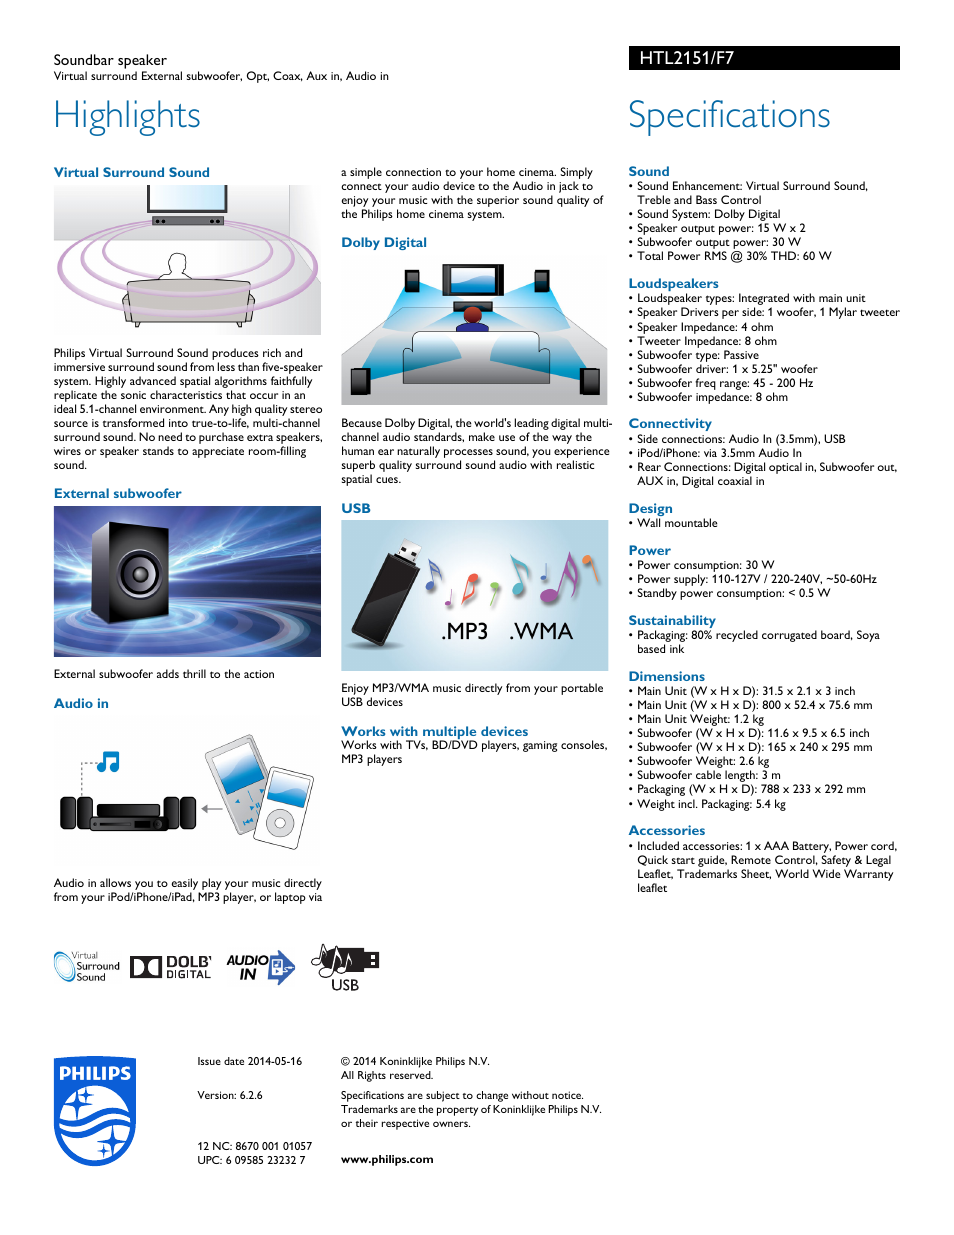 Highlights, Specifications | Philips HTL2151-F7 User Manual